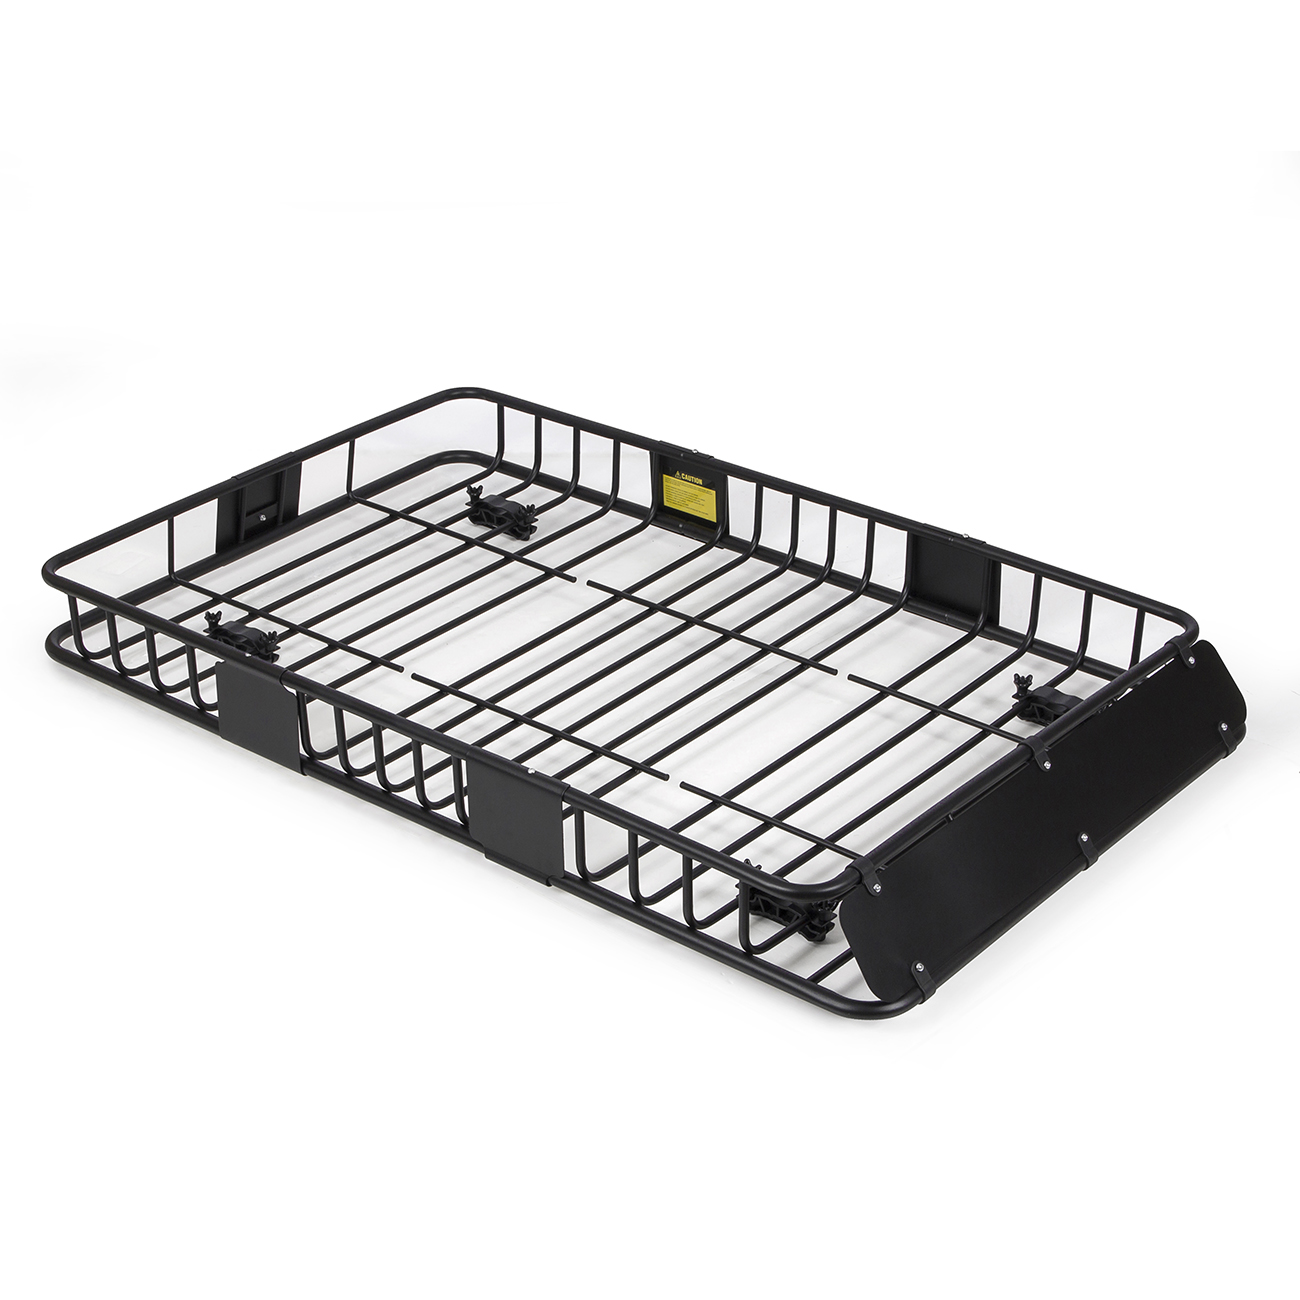 64 Quot Universal Black Roof Rack Cargo Carrier W Extension